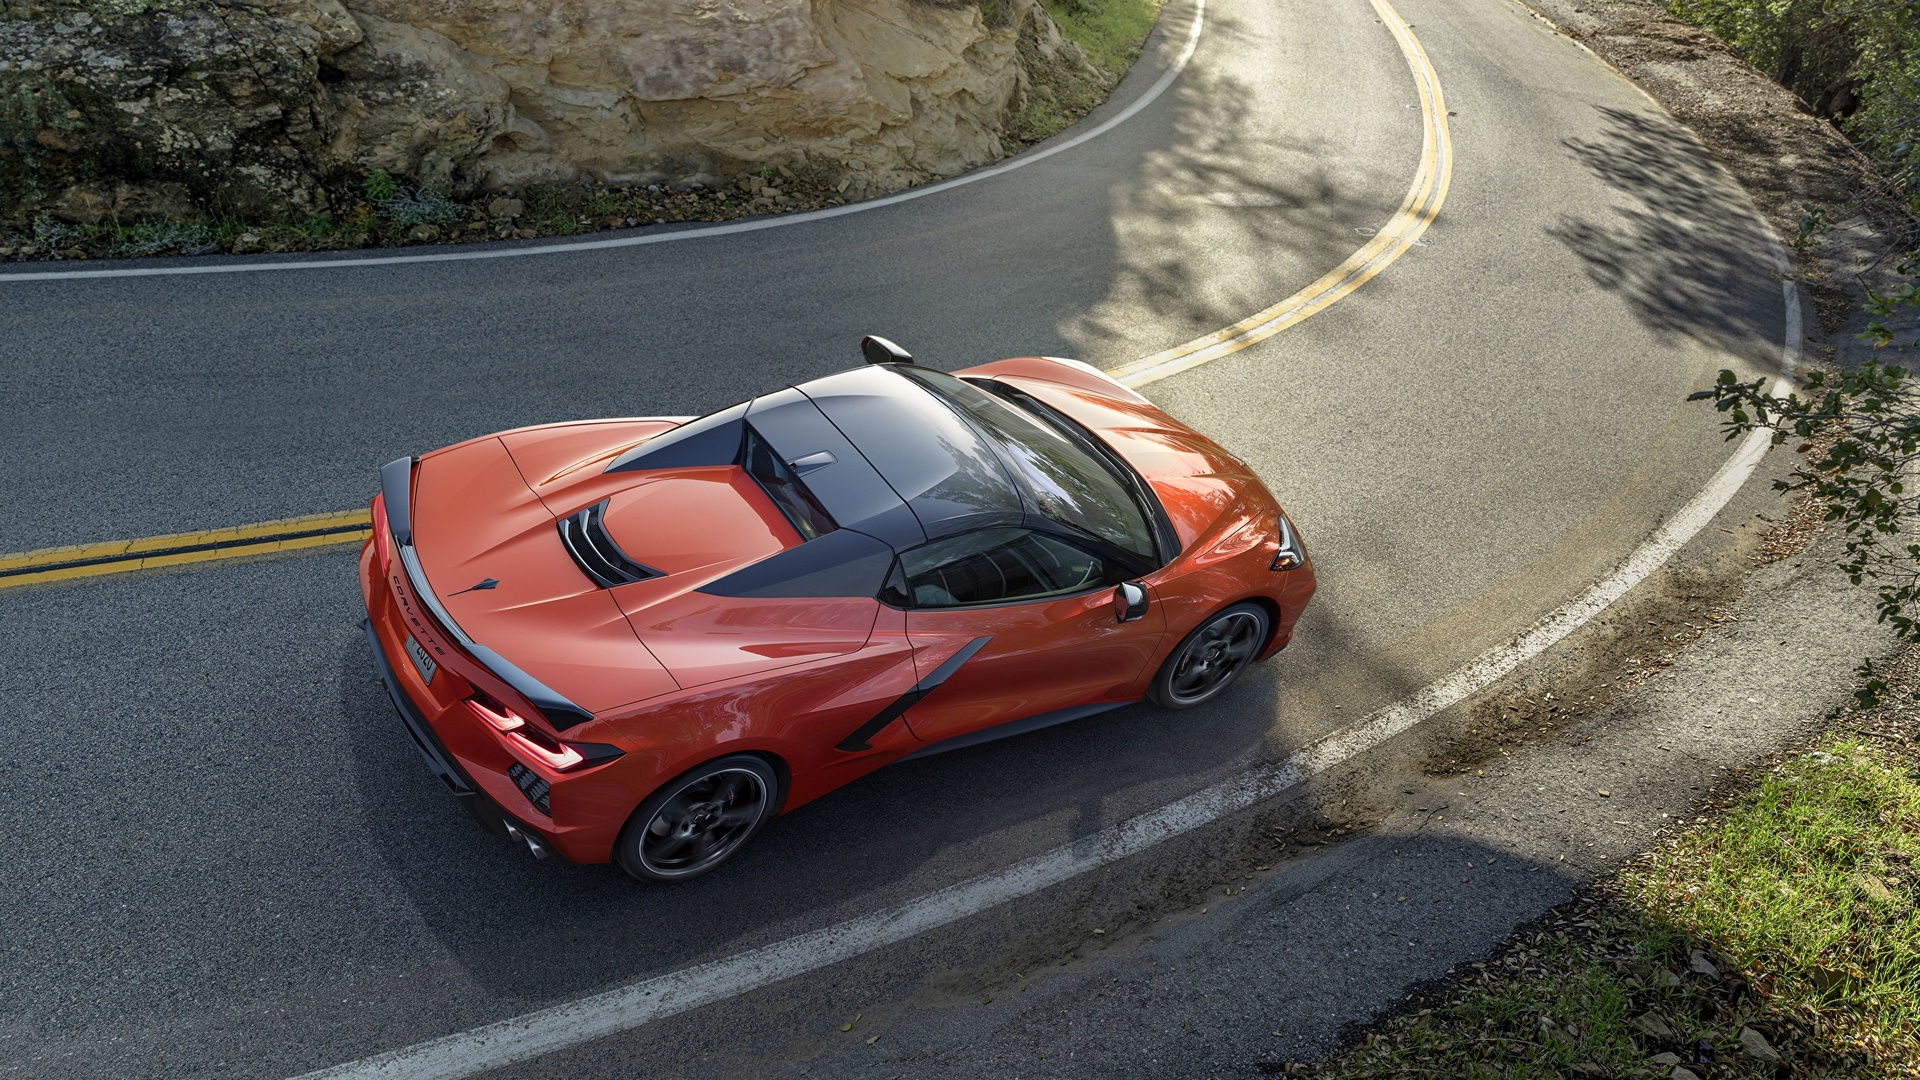 General Motors will be adding five new cars to the C8 Corvette lineup until 2025, so let's take a closer look at them.